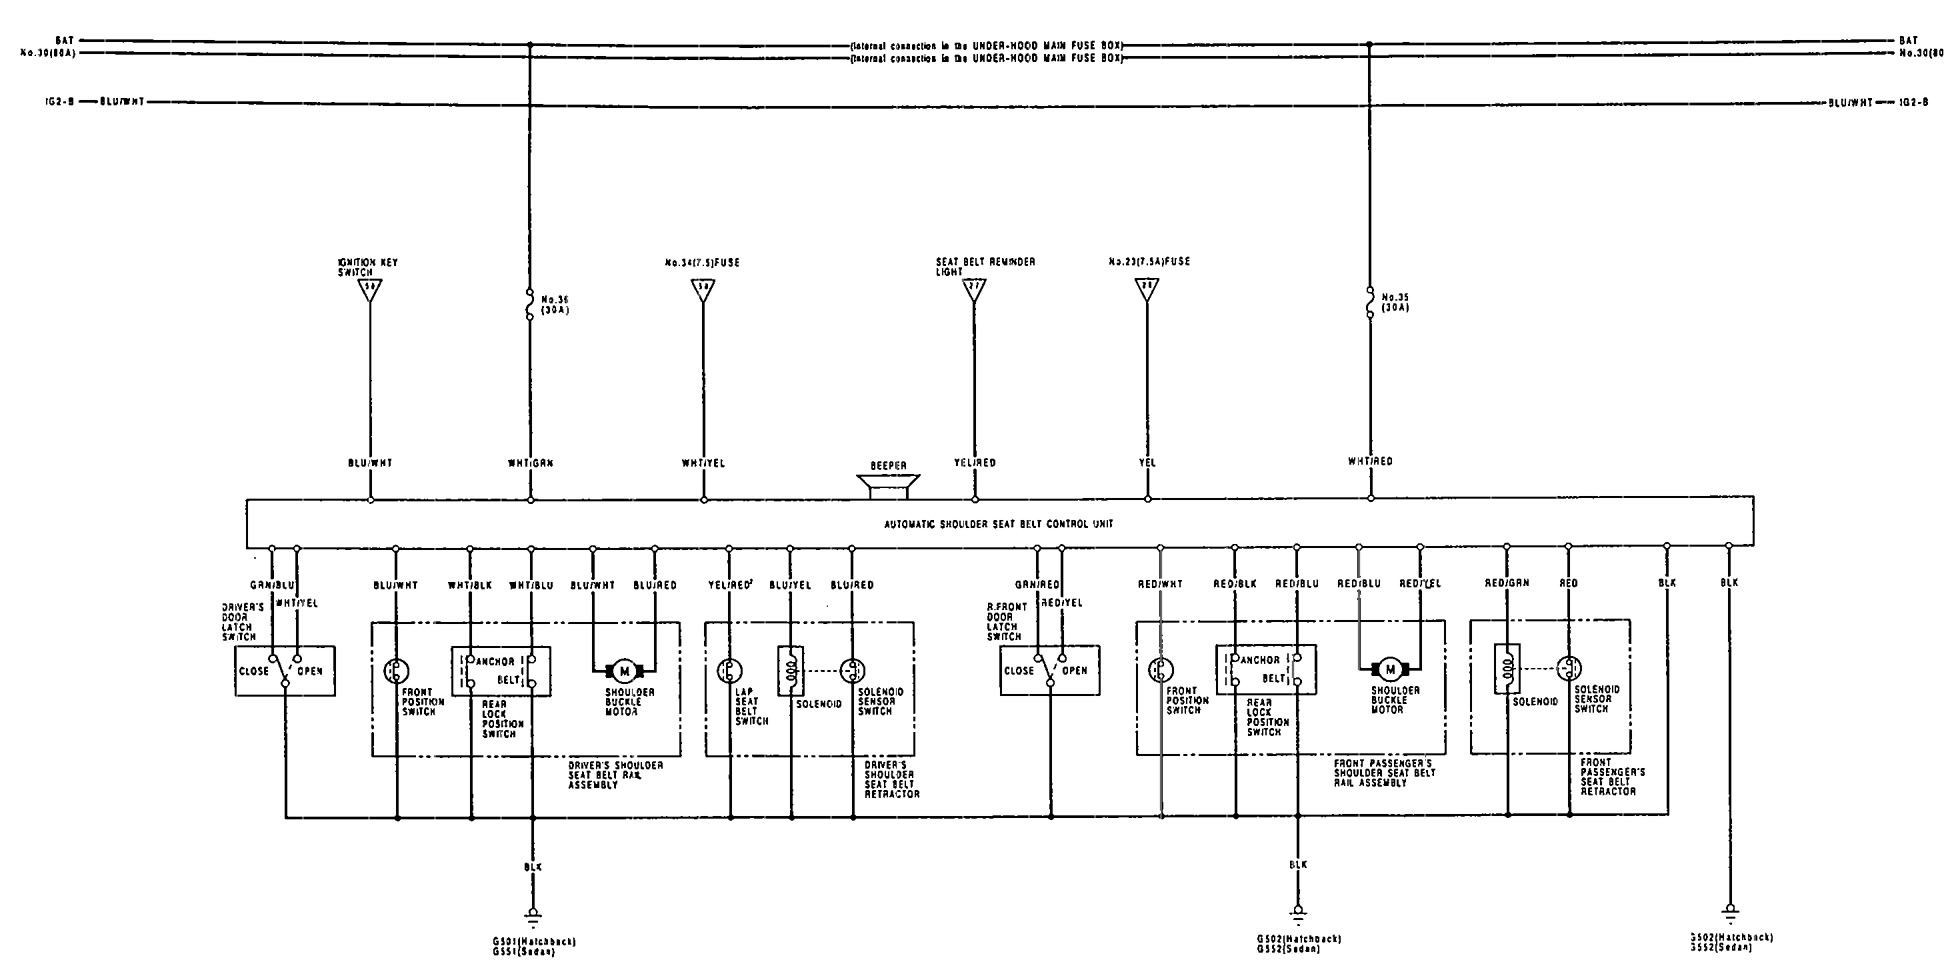 Jaguar S Type Wiring Diagram Download moreover T6503093 Fuse panel diagram 1998 toyota corolla additionally 2uag7 Lexus Rx330 2004 Stereo Will Not Turn On Stereo together with 2007 Freightliner M2 Wiring Diagram together with 2005 Mazda Tribute Radio Wiring Diagram. on xsara radio wiring diagram